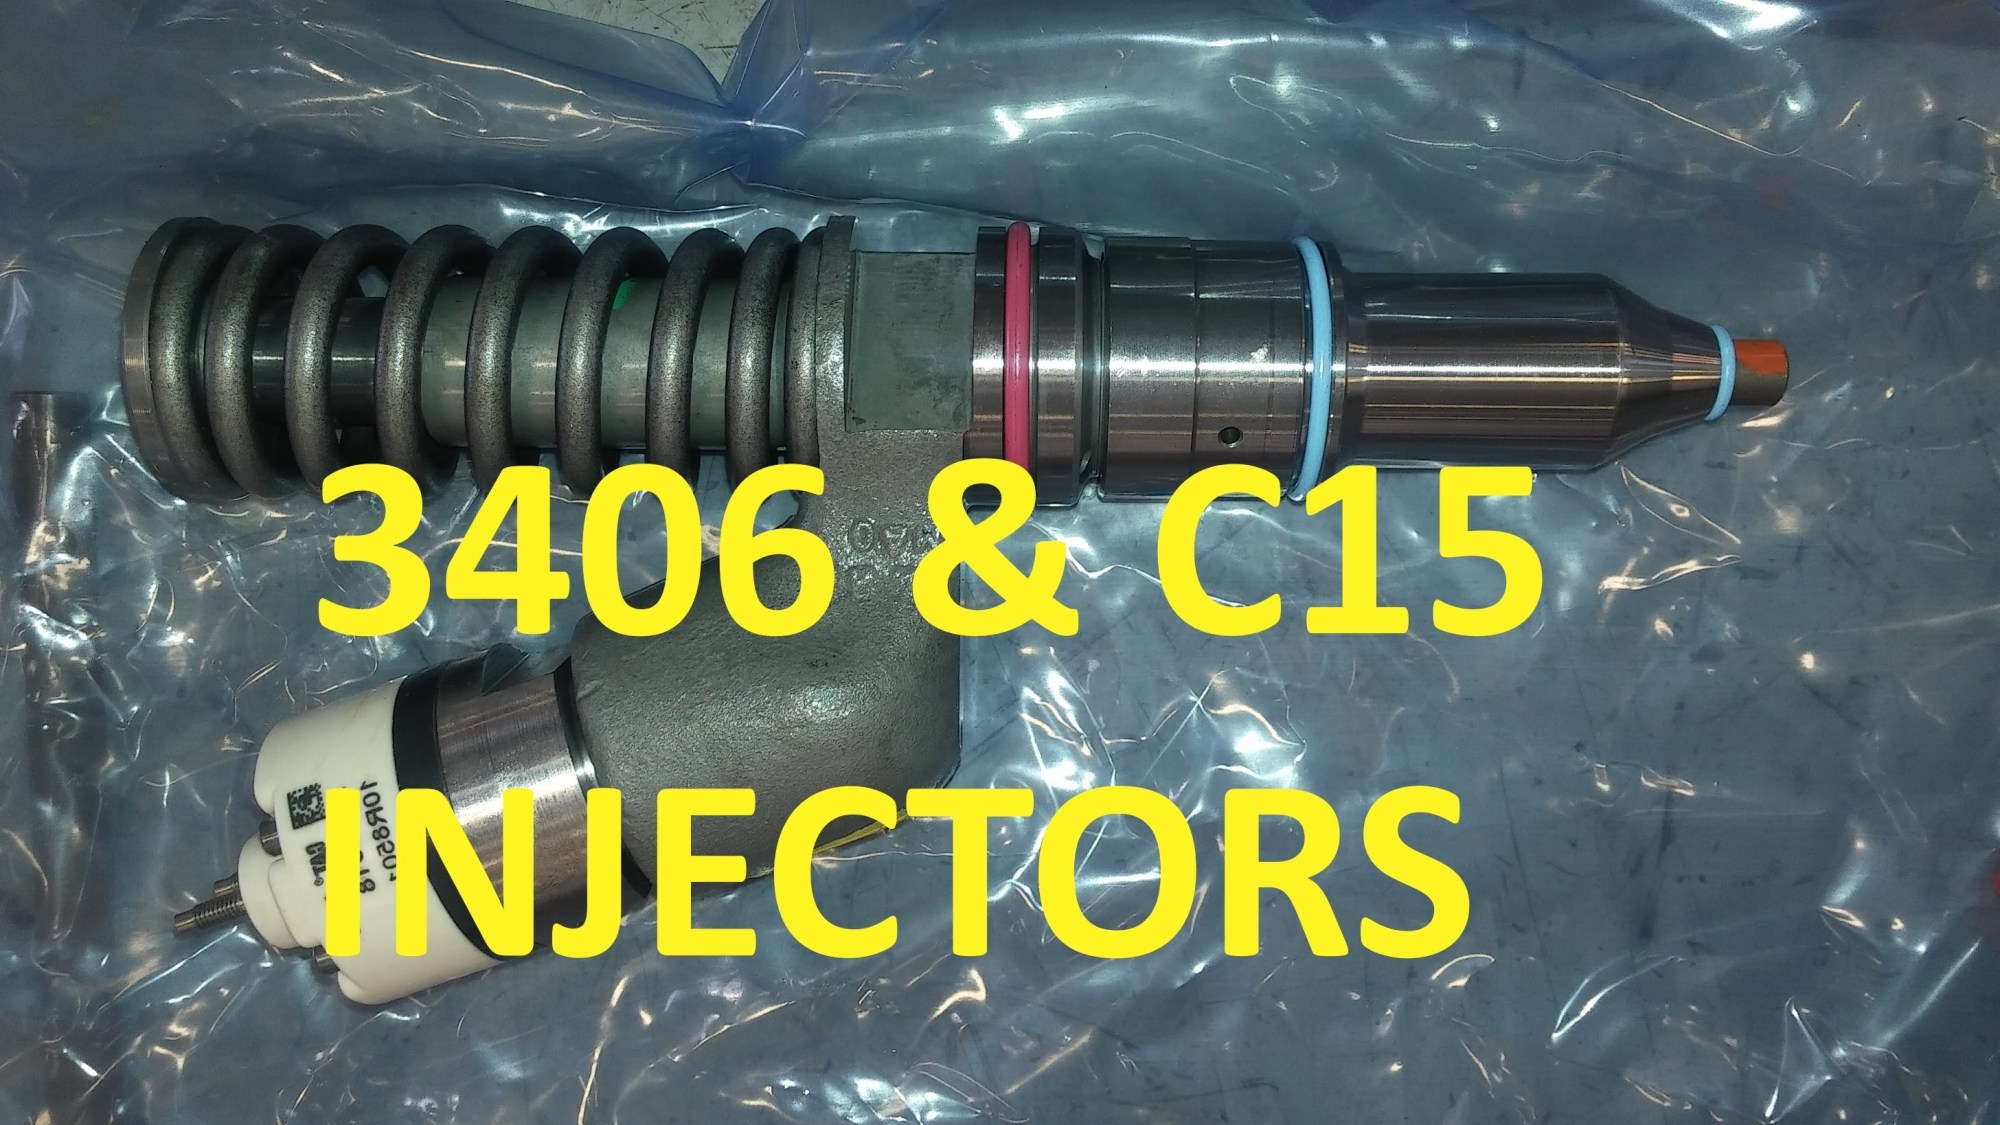 hight resolution of c13 caterpillar engine diagram how to change a 3406 injector or c15 injector on cat engines